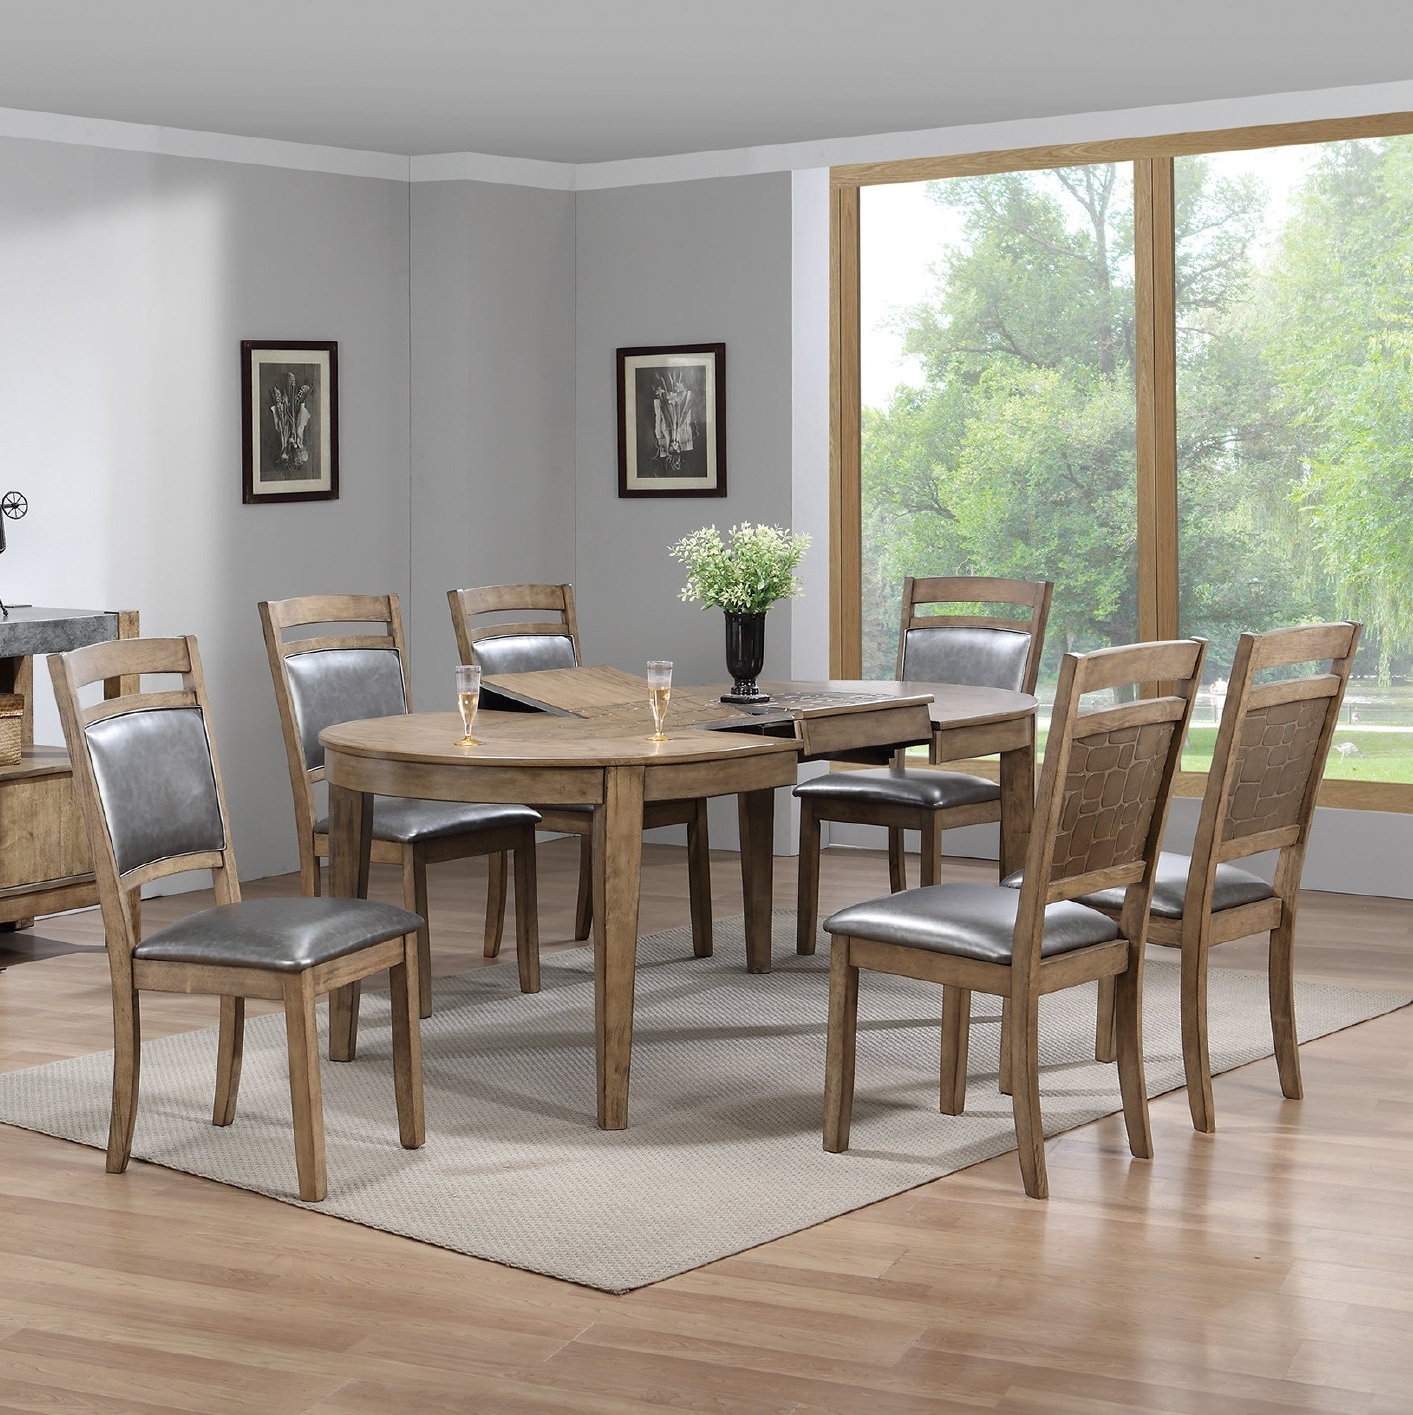 Newest Caira 7 Piece Rectangular Dining Sets With Upholstered Side Chairs Regarding Gracie Oaks Warthen 7 Piece Dining Set (View 10 of 25)